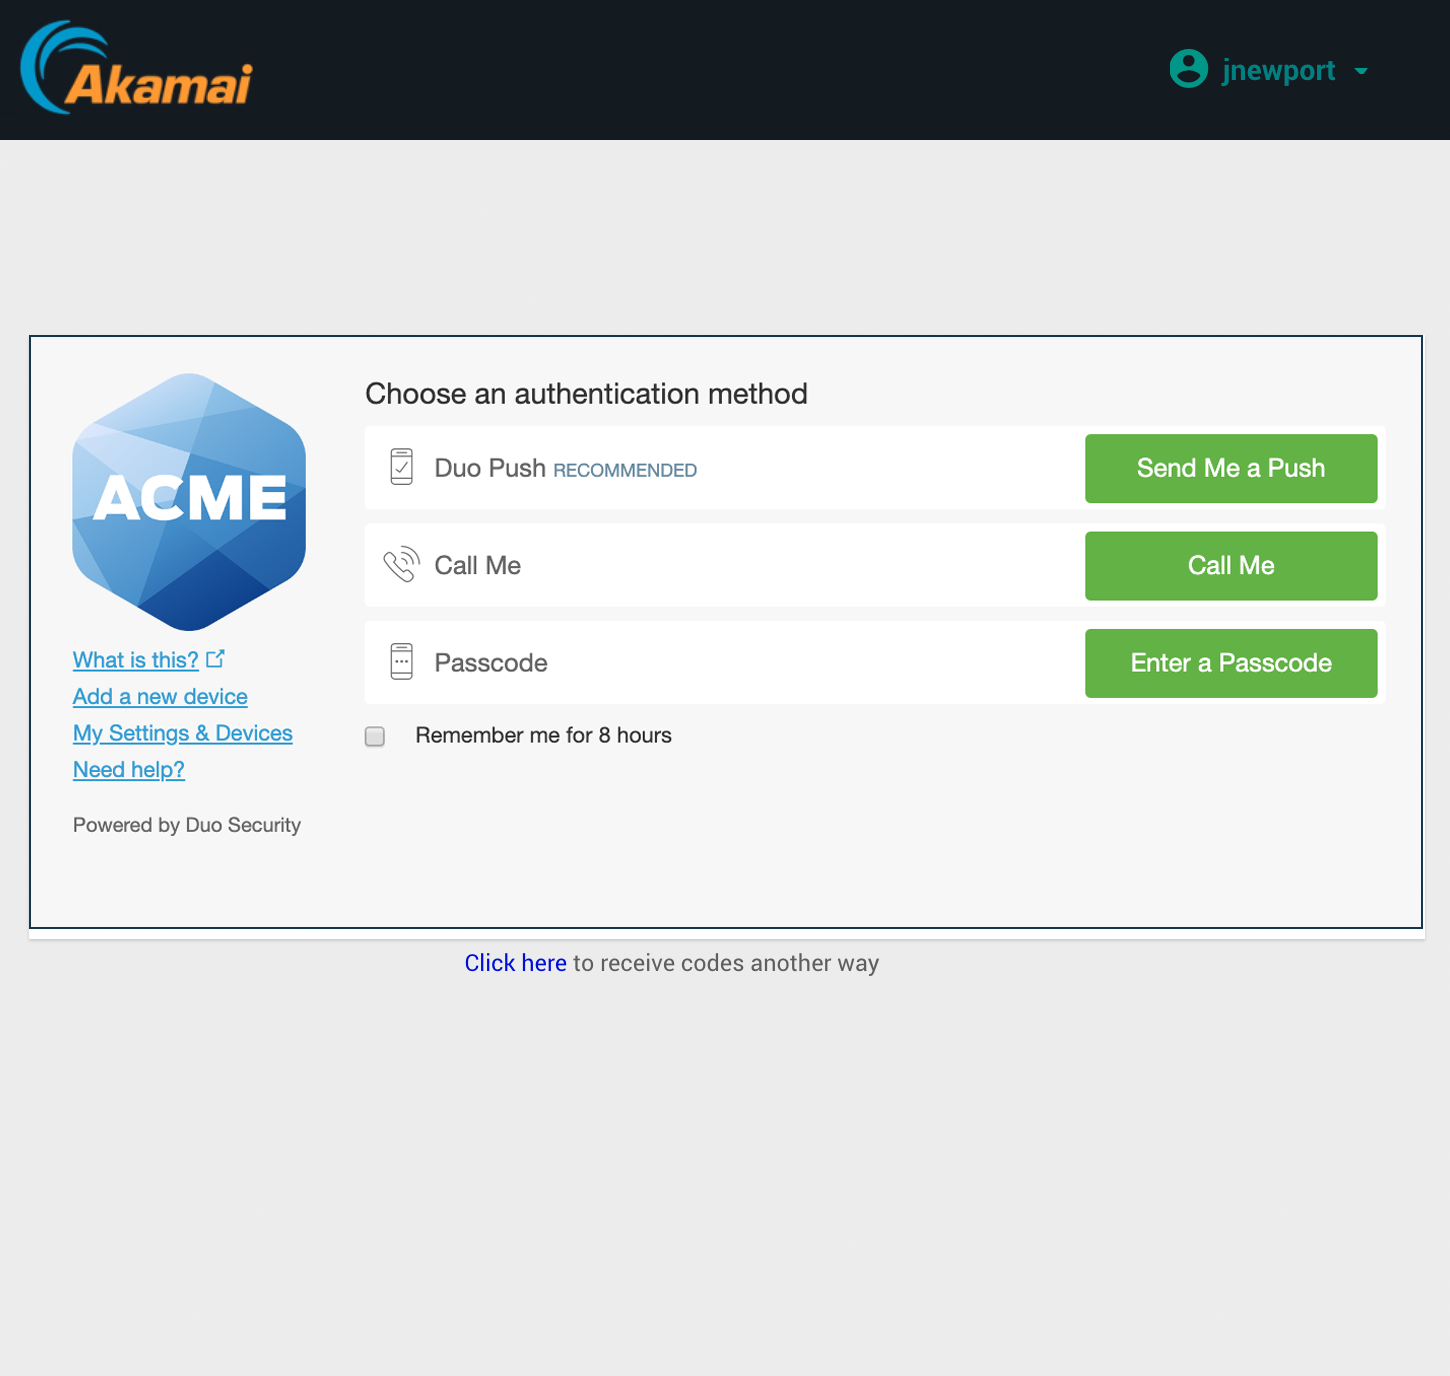 Akamai EAA Duo Authentication